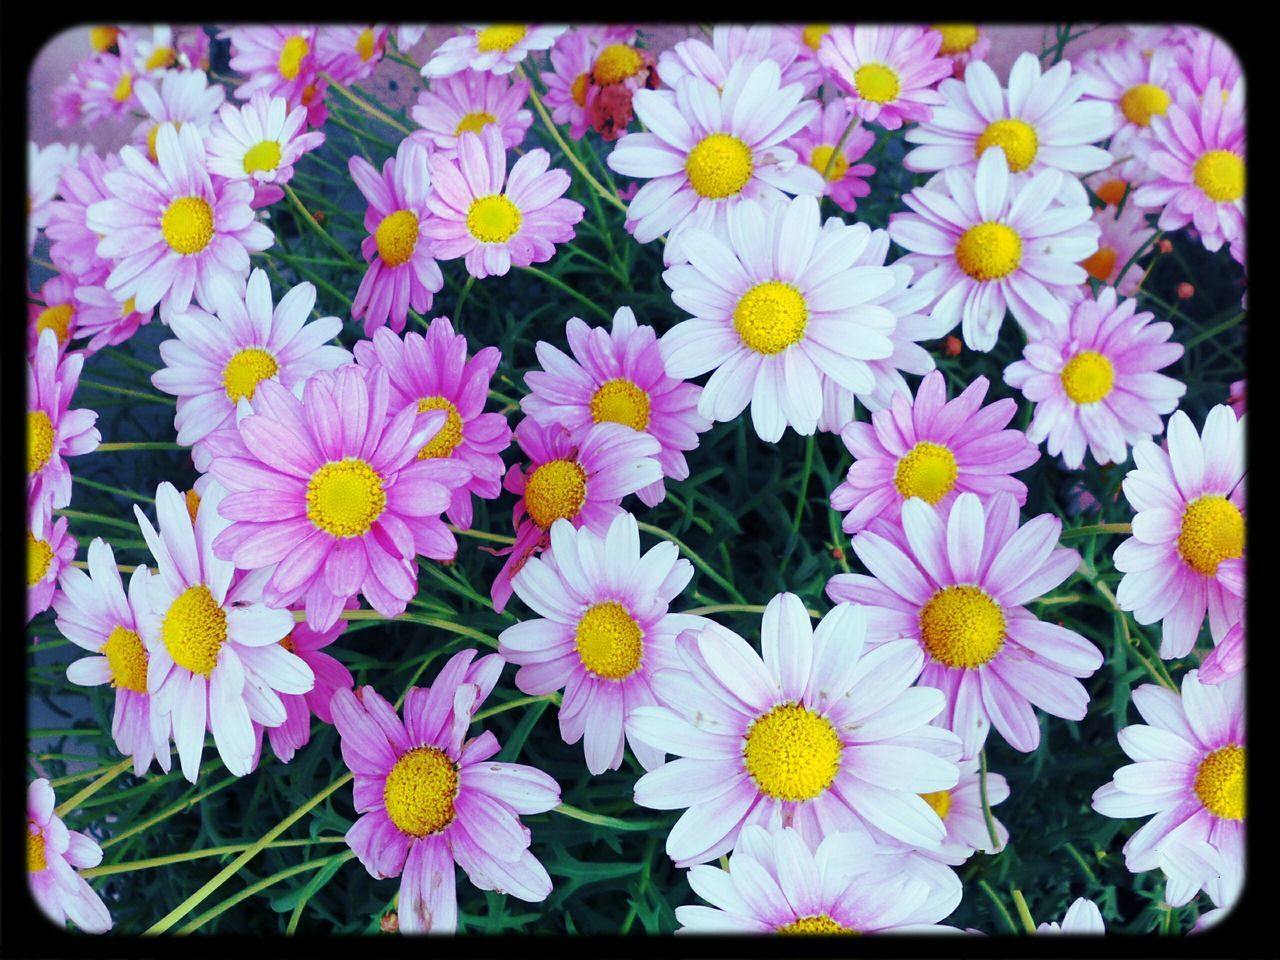 Full Frame Shot Of Daisy Flowers Blooming In Field